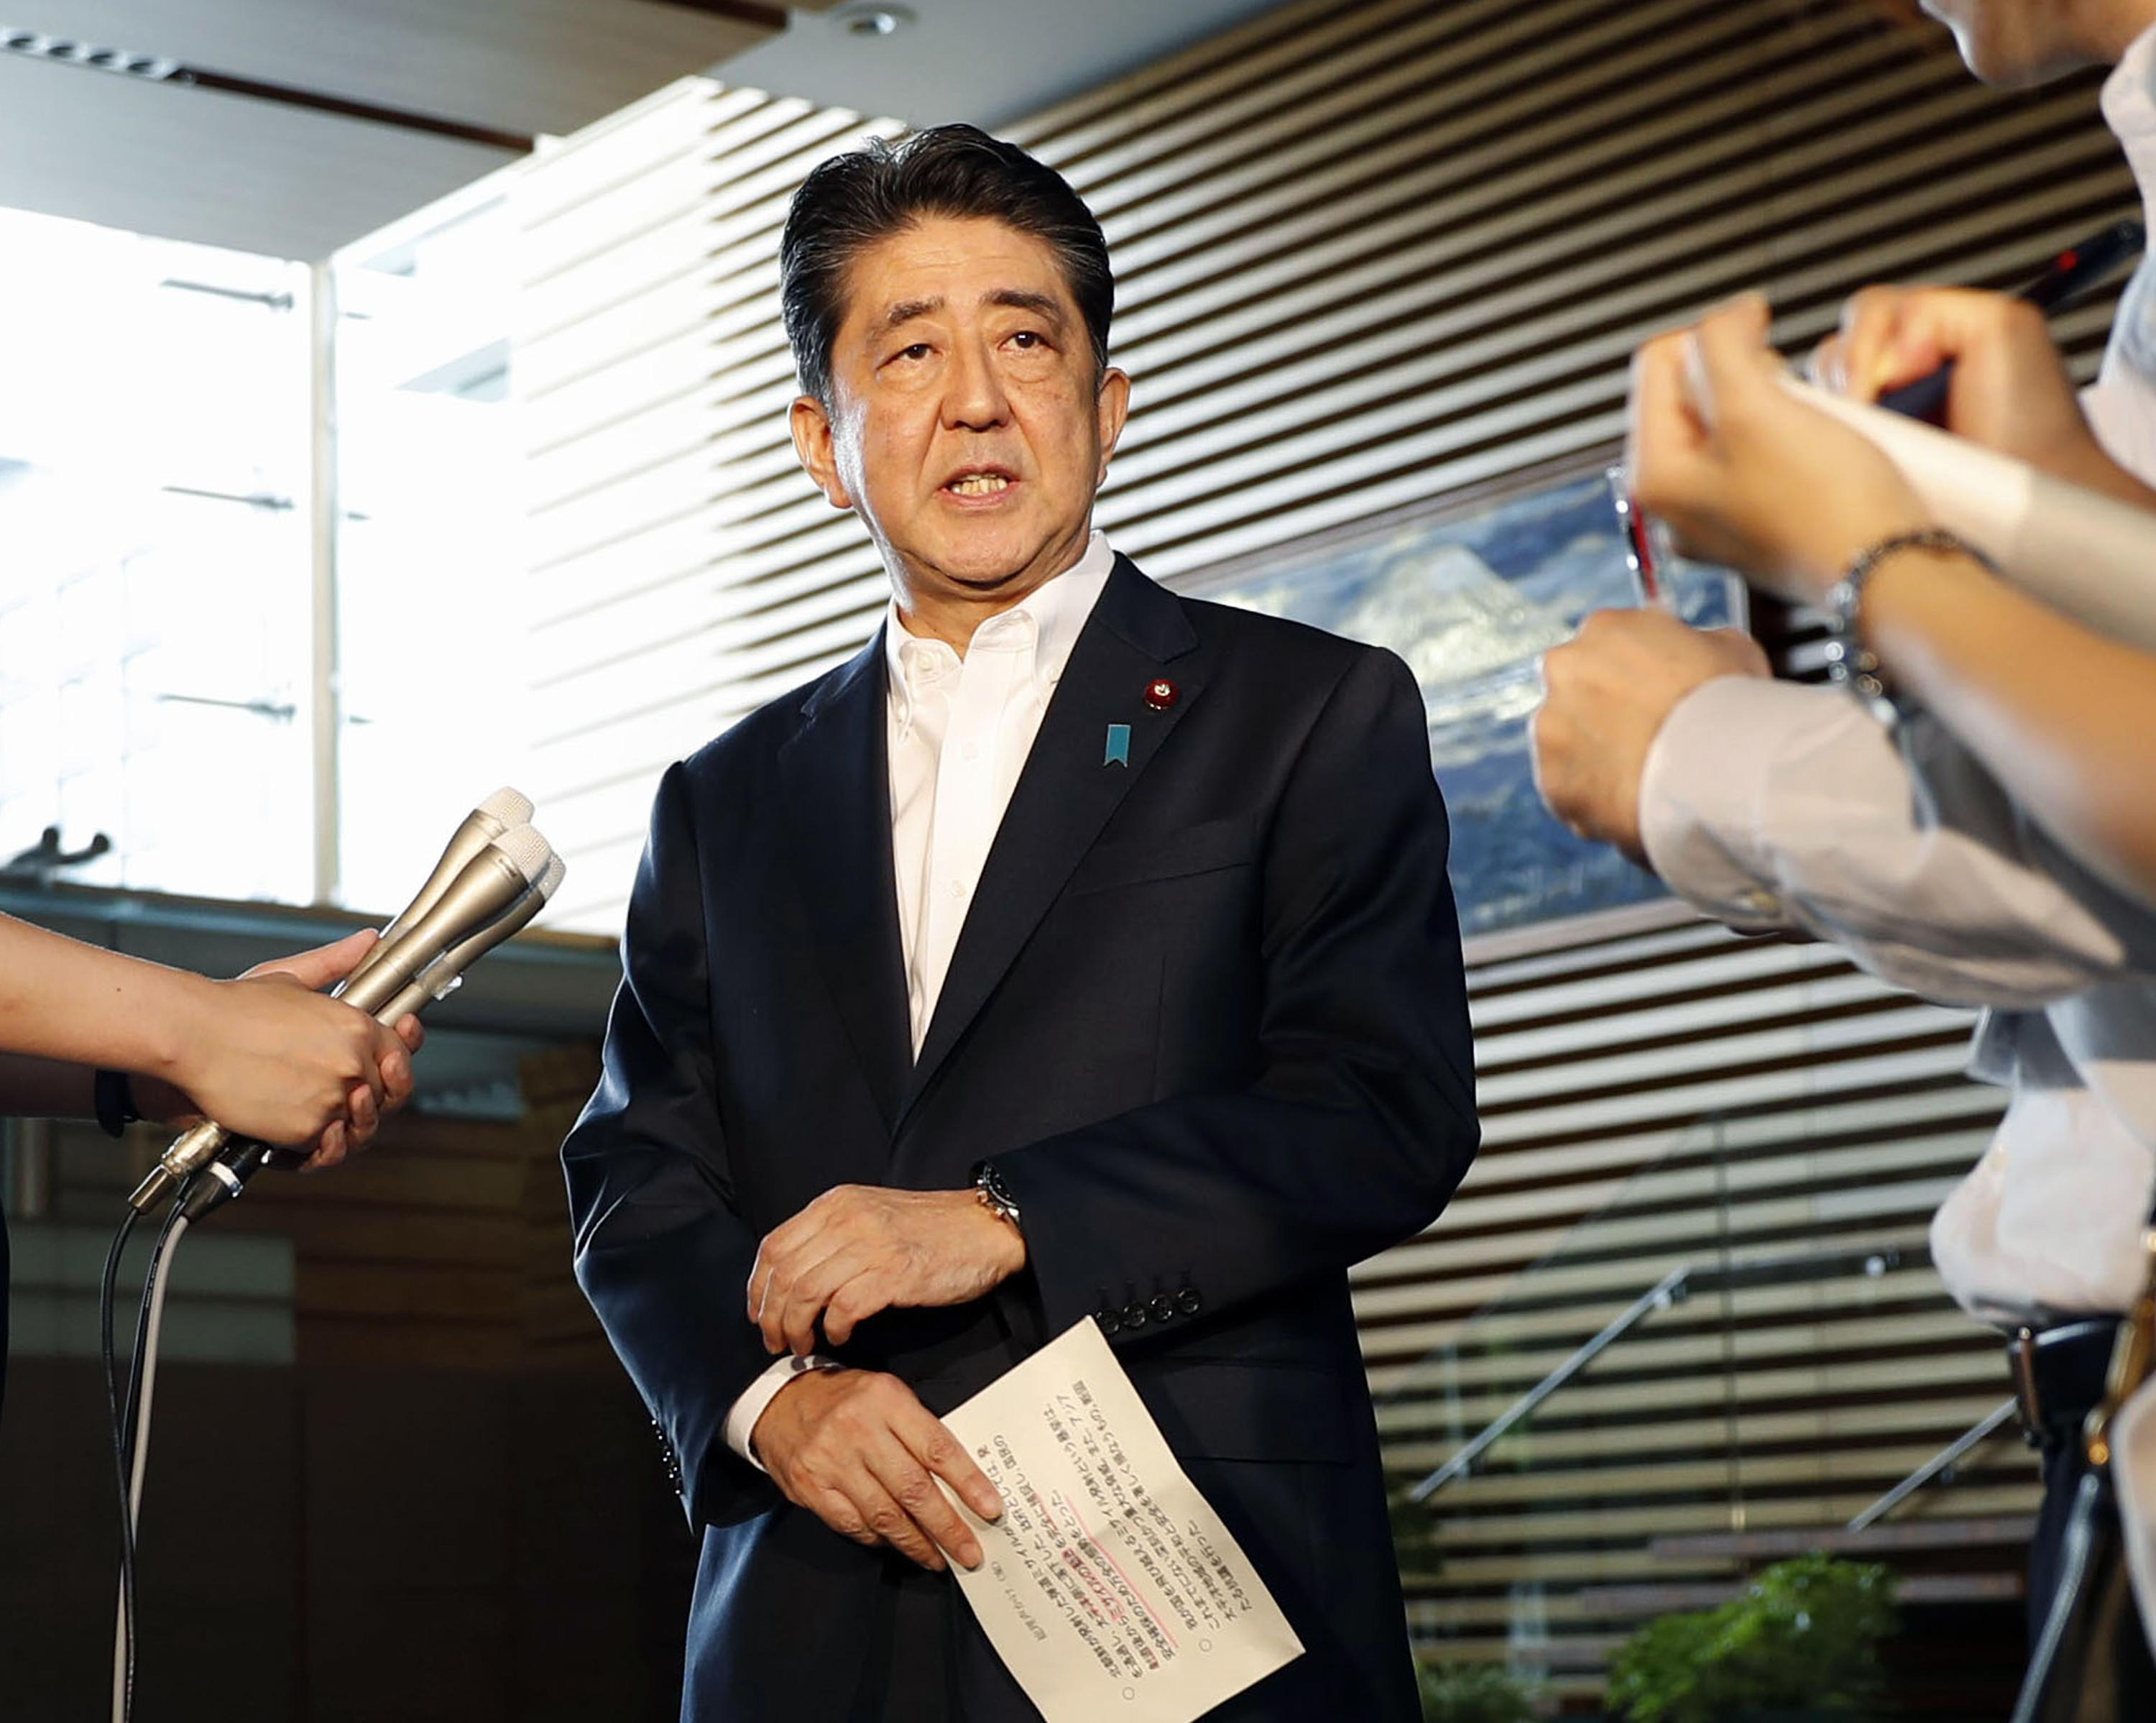 Japanese Prime Minister Shinzo Abe speaks to journalists at his official residence in Tokyo after North Korea's firing of a projectile over Japan Tuesday, Aug. 29, 2017.  (Kyodo News via AP)